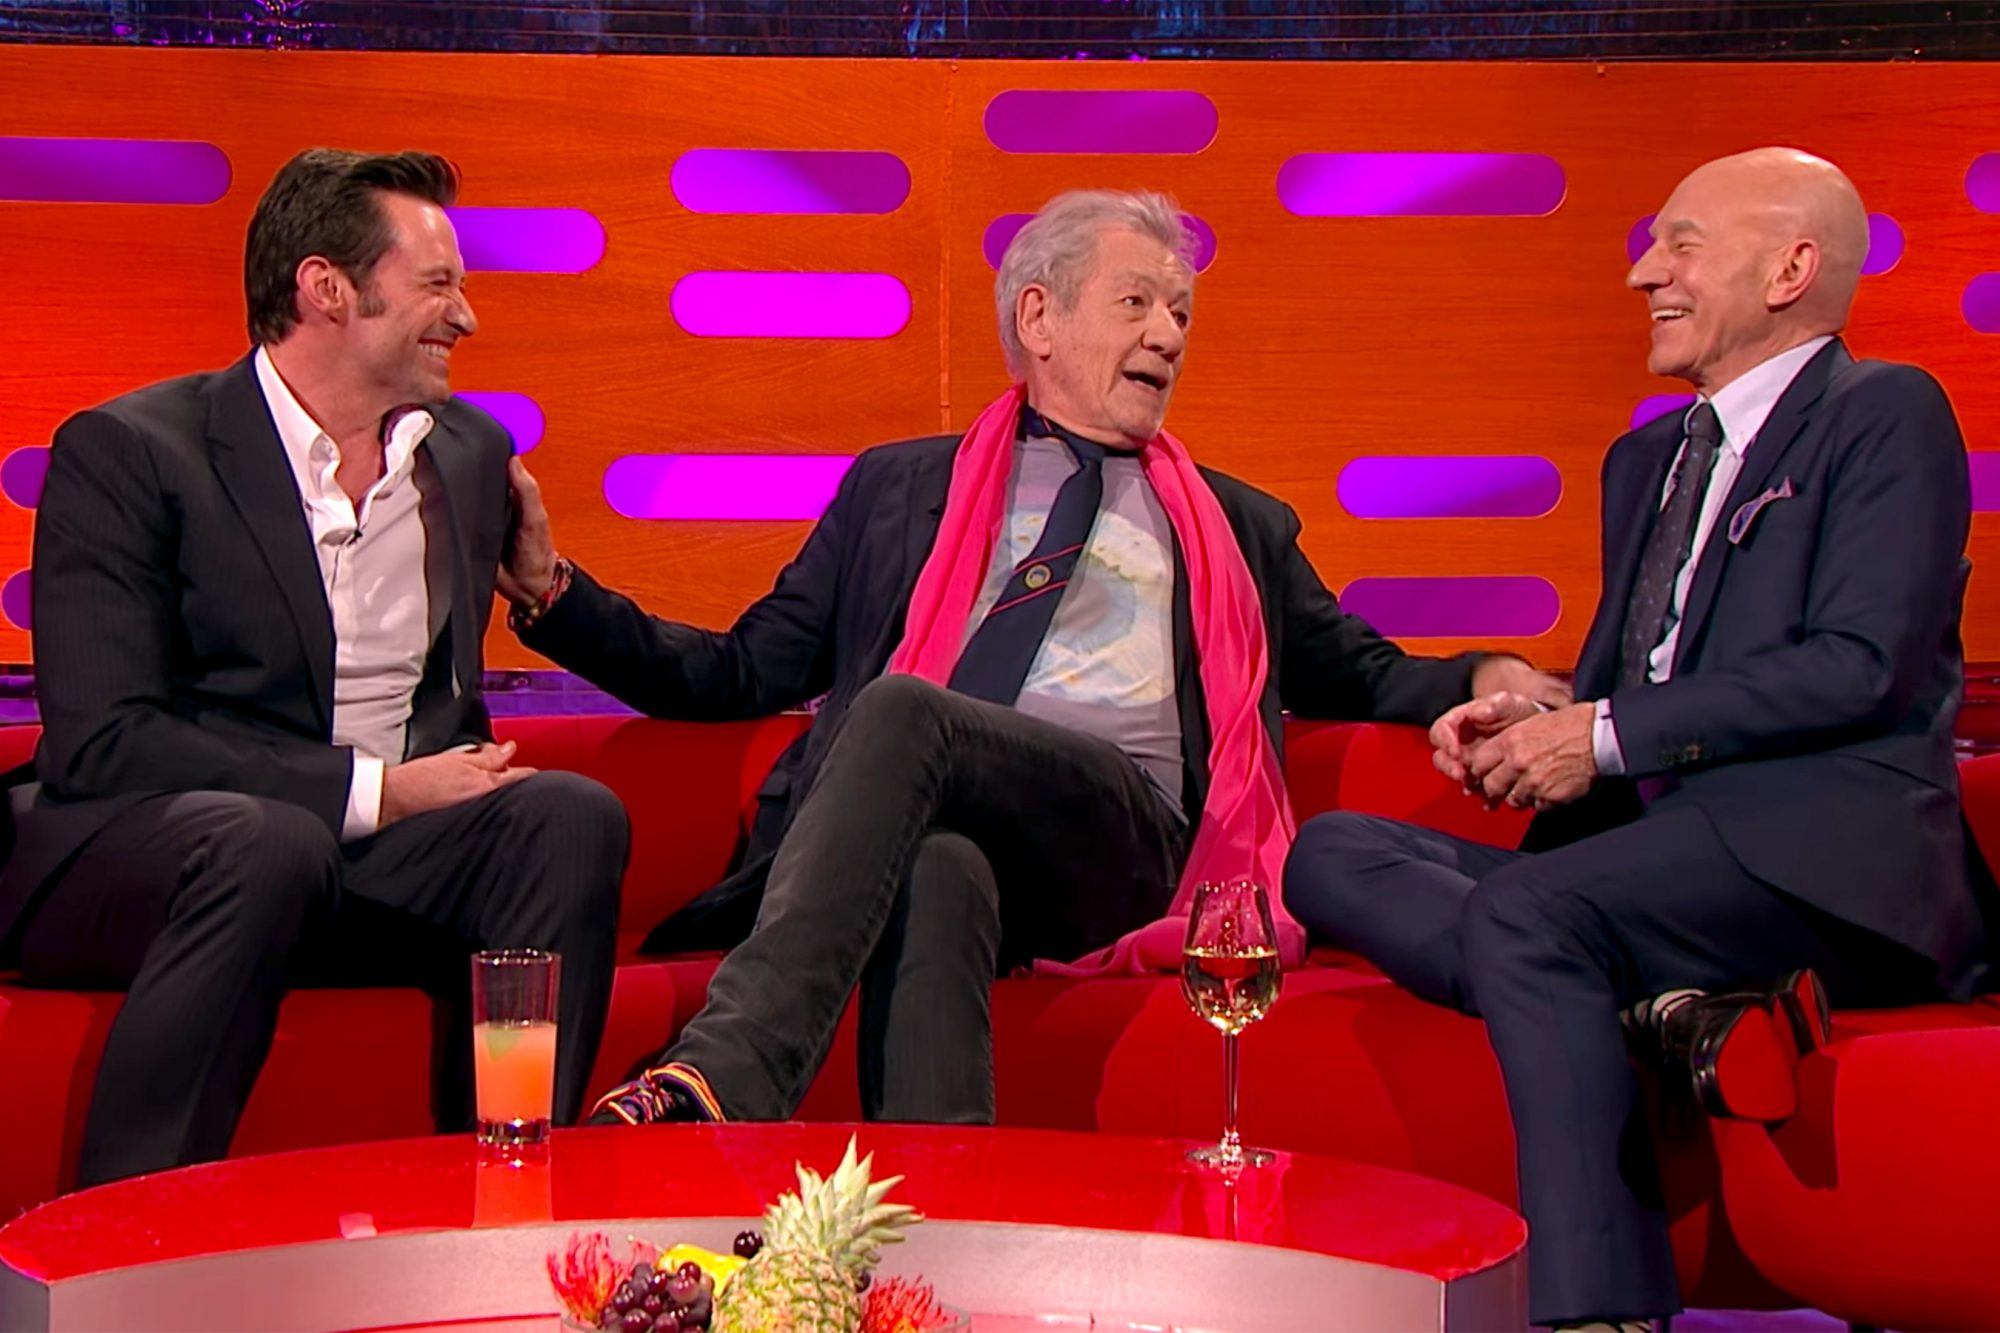 Ian McKellen on The Graham Norton Show with Hugh Jackman and Patrick Stewart